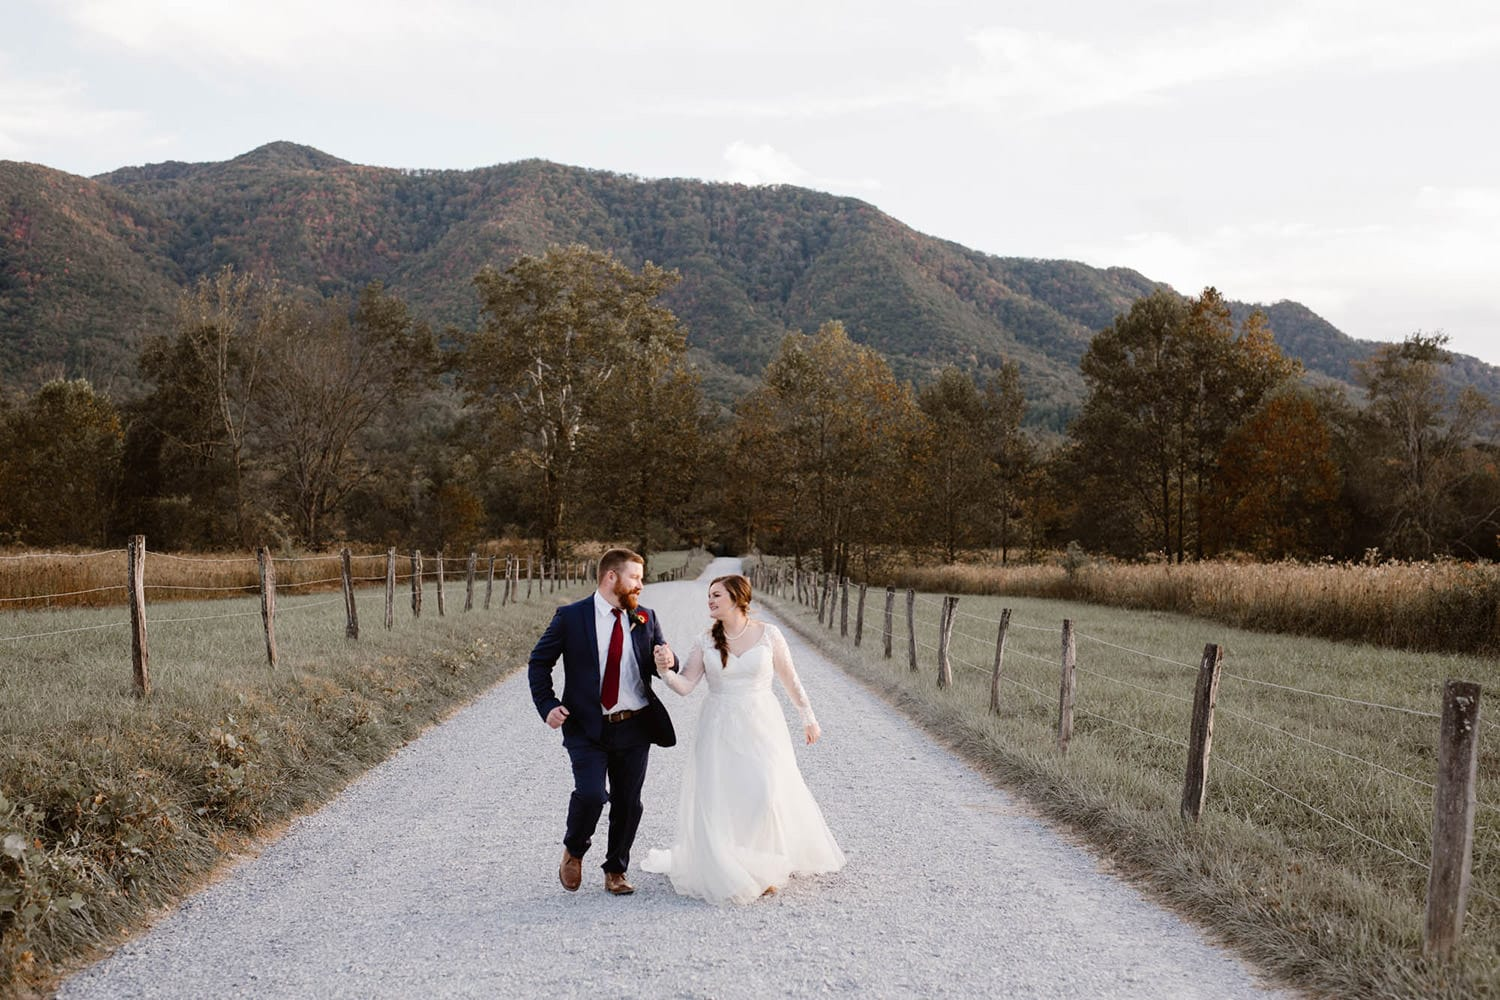 couple in a dirt road with the mountains behind them